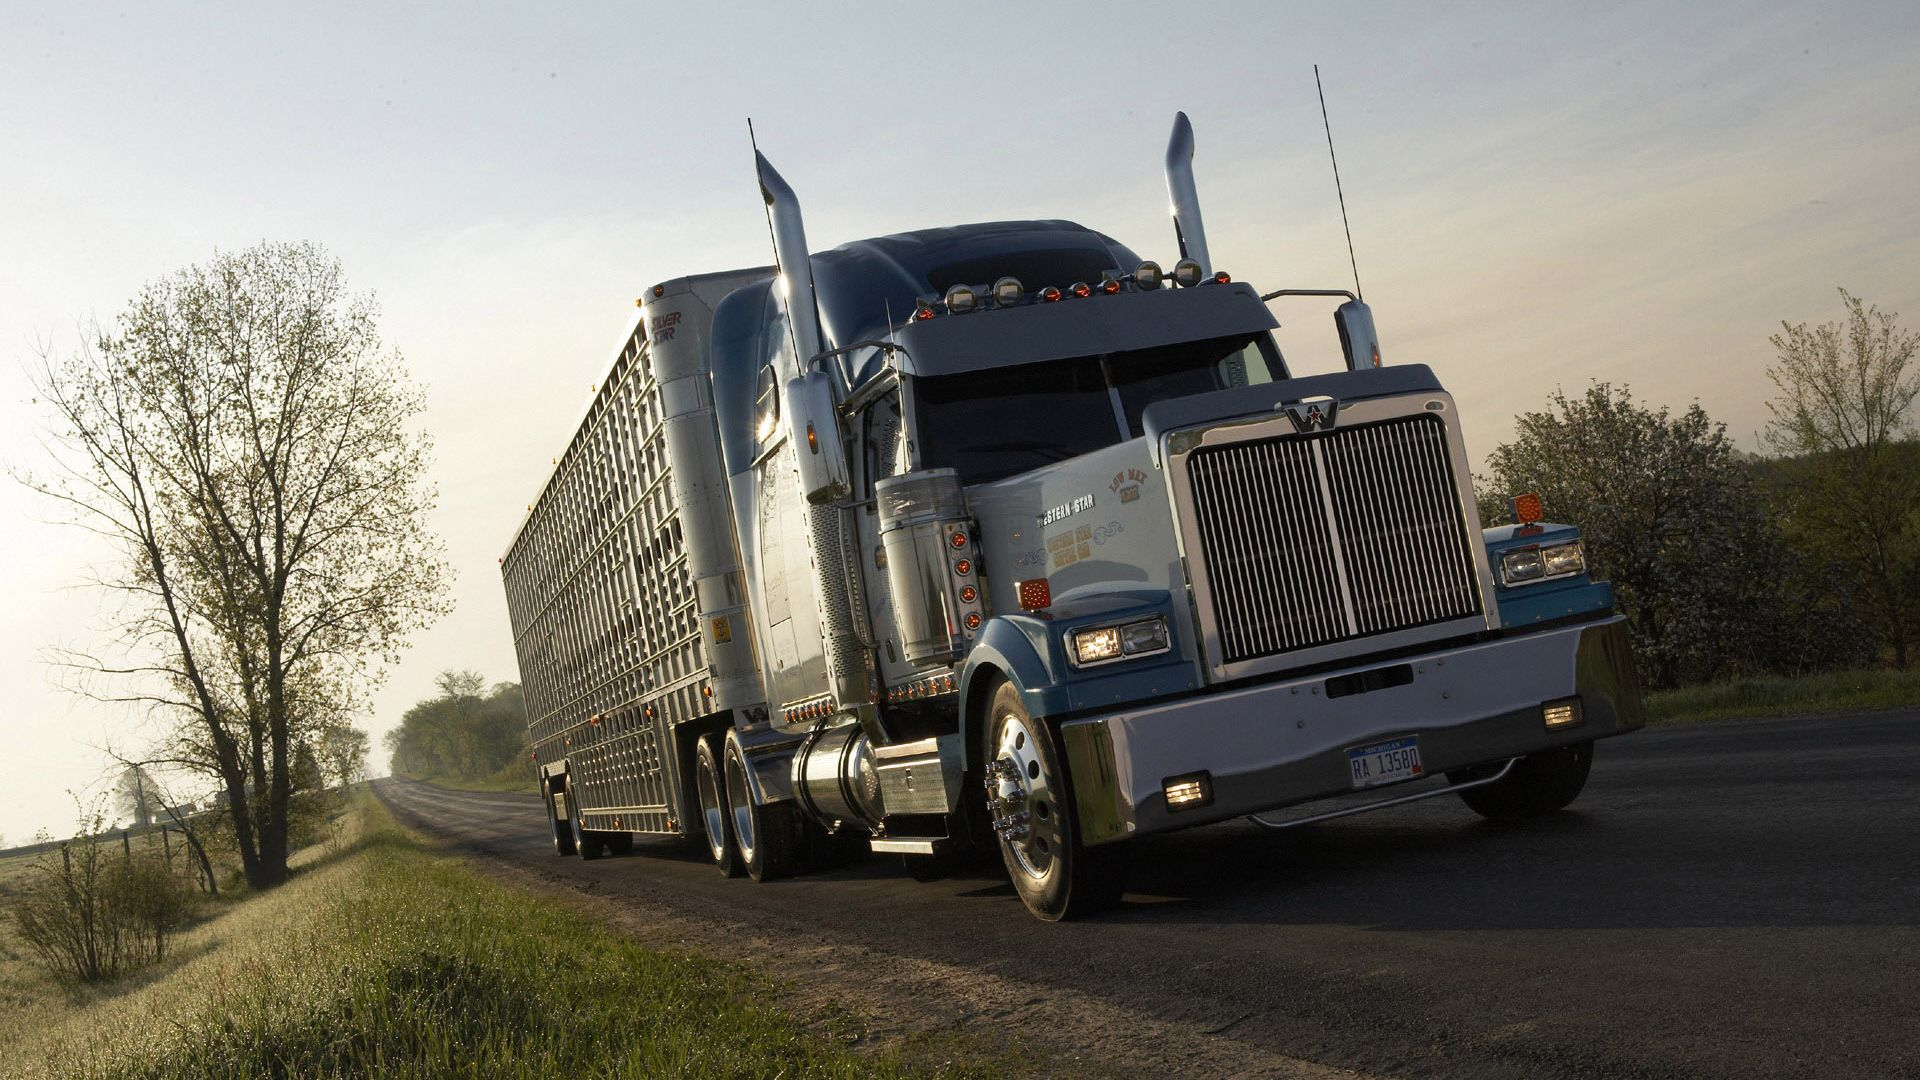 Western Star Heavy Duty Trucks 1080p Hd Wallpaper Widescreen